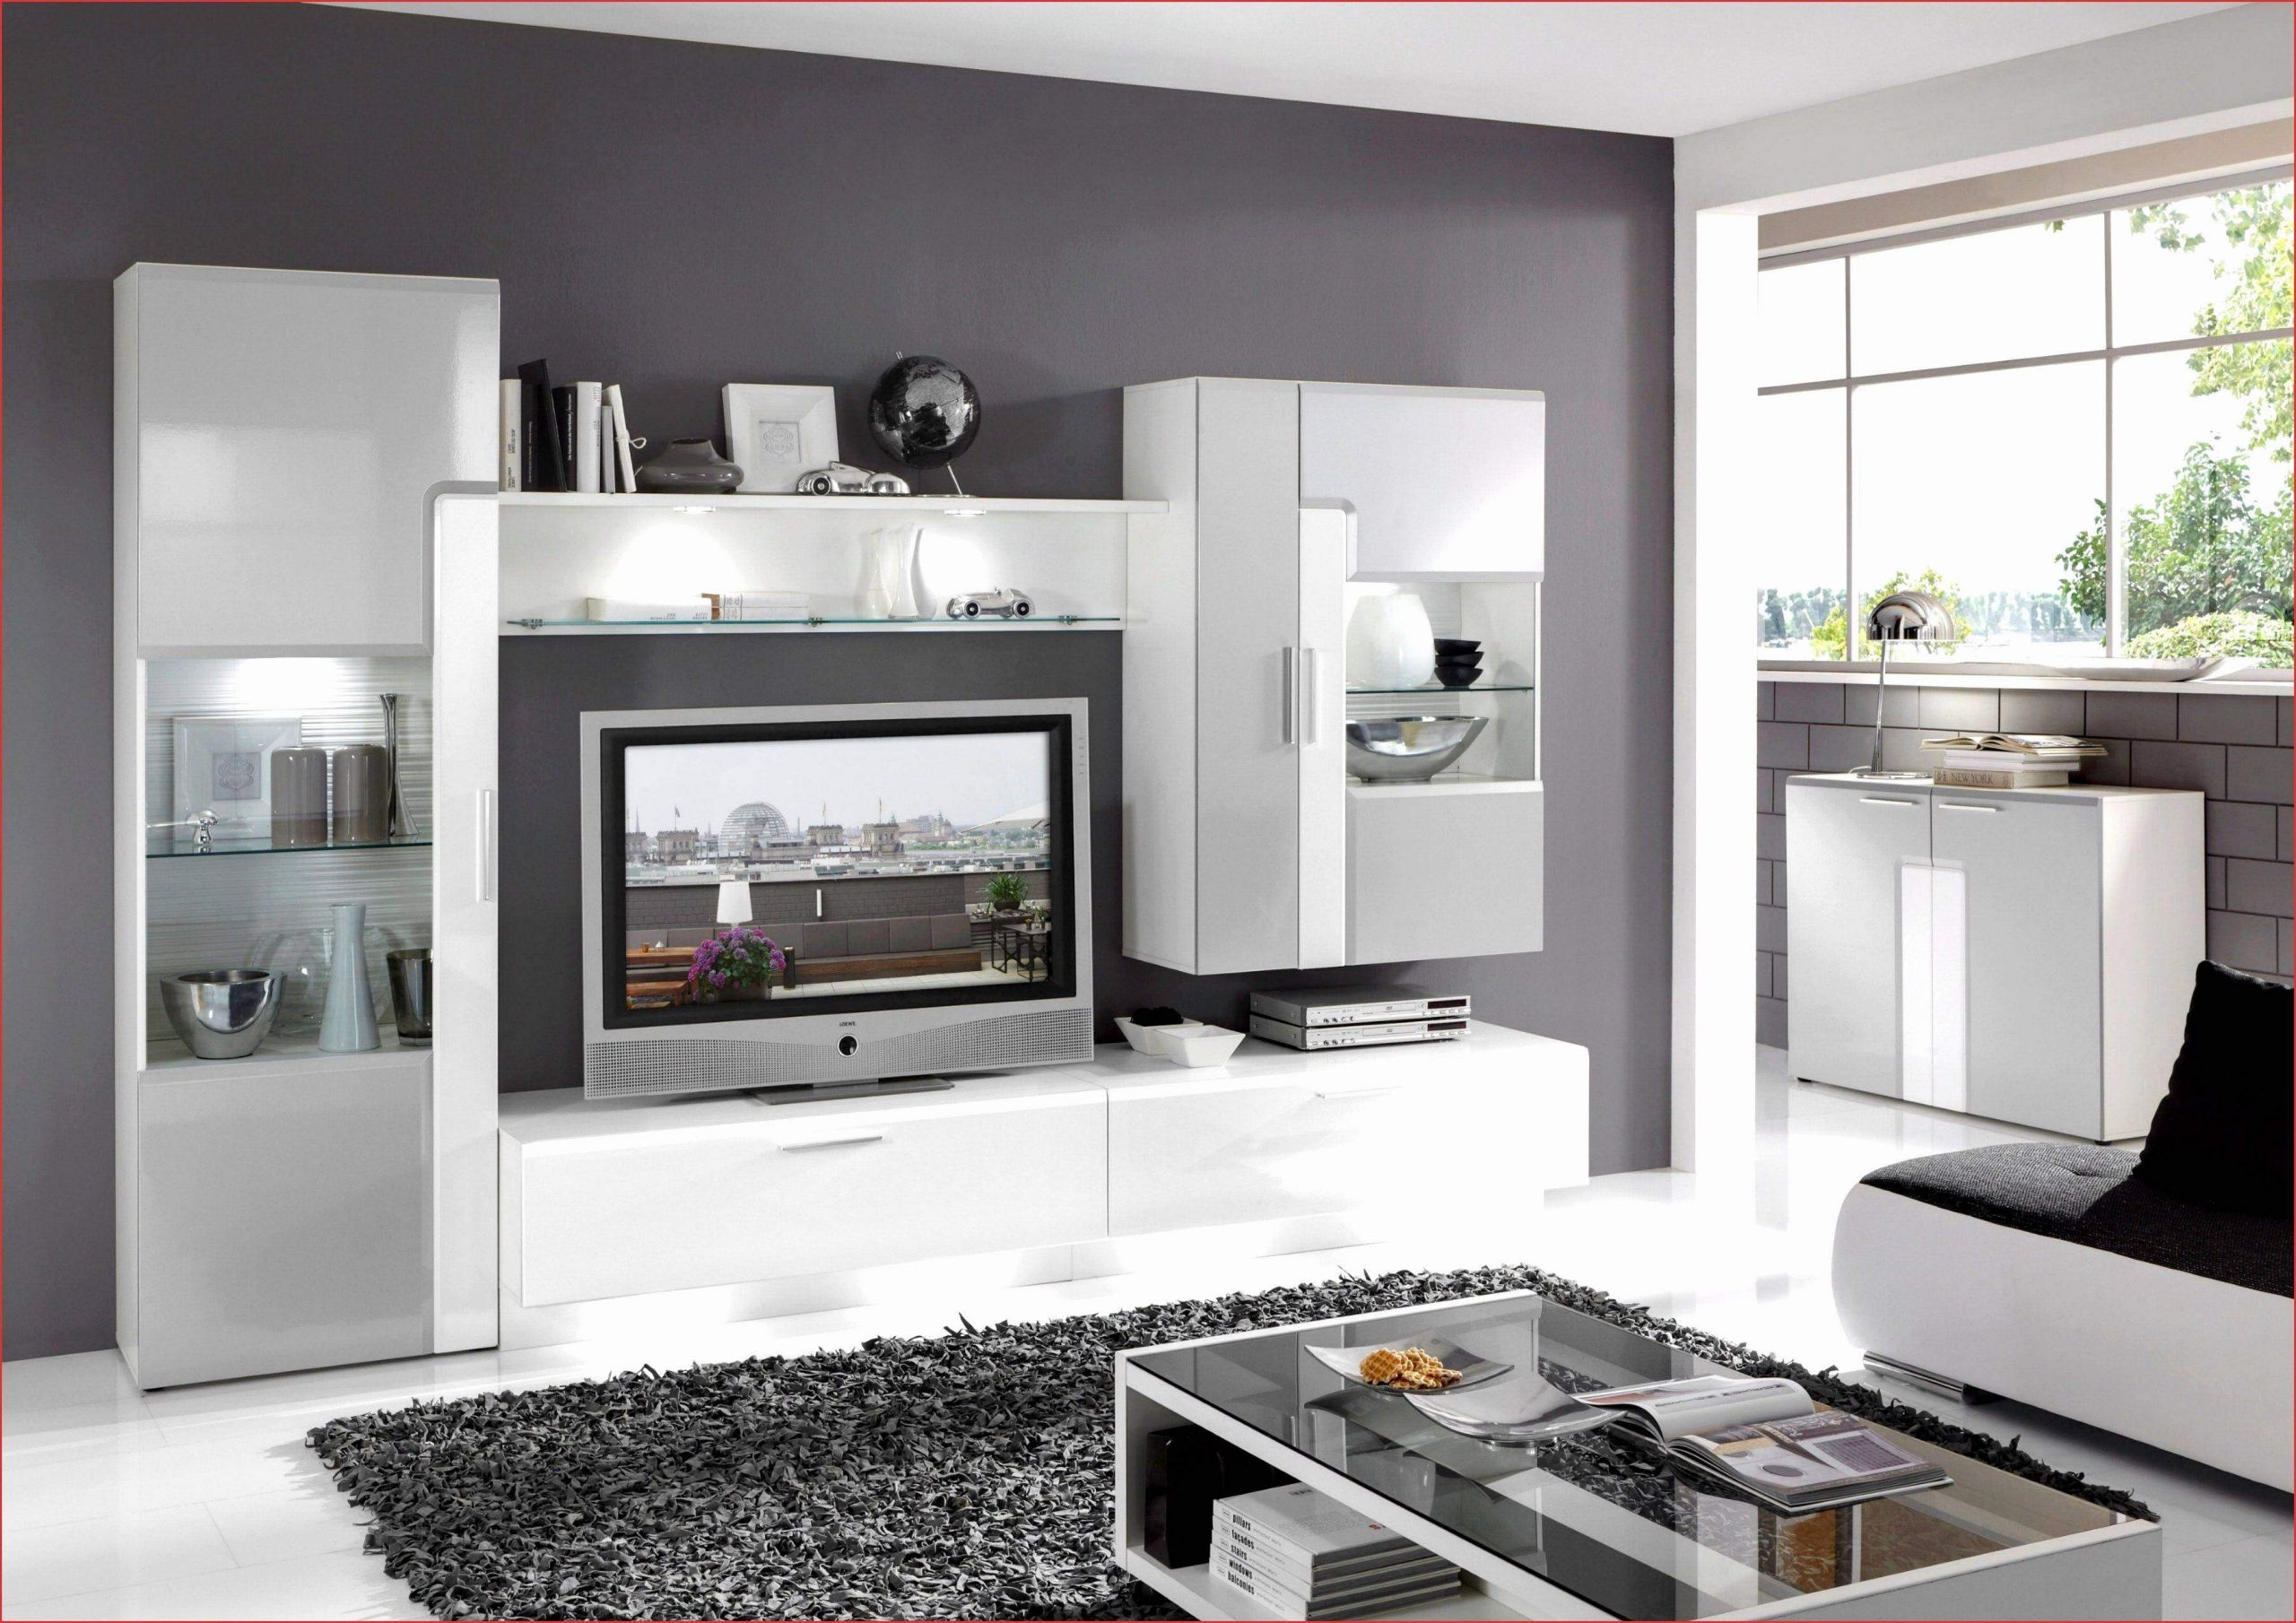 living room entertainment center ideas awesome new wohnzimmer regal ideen ideas of living room entertainment center ideas